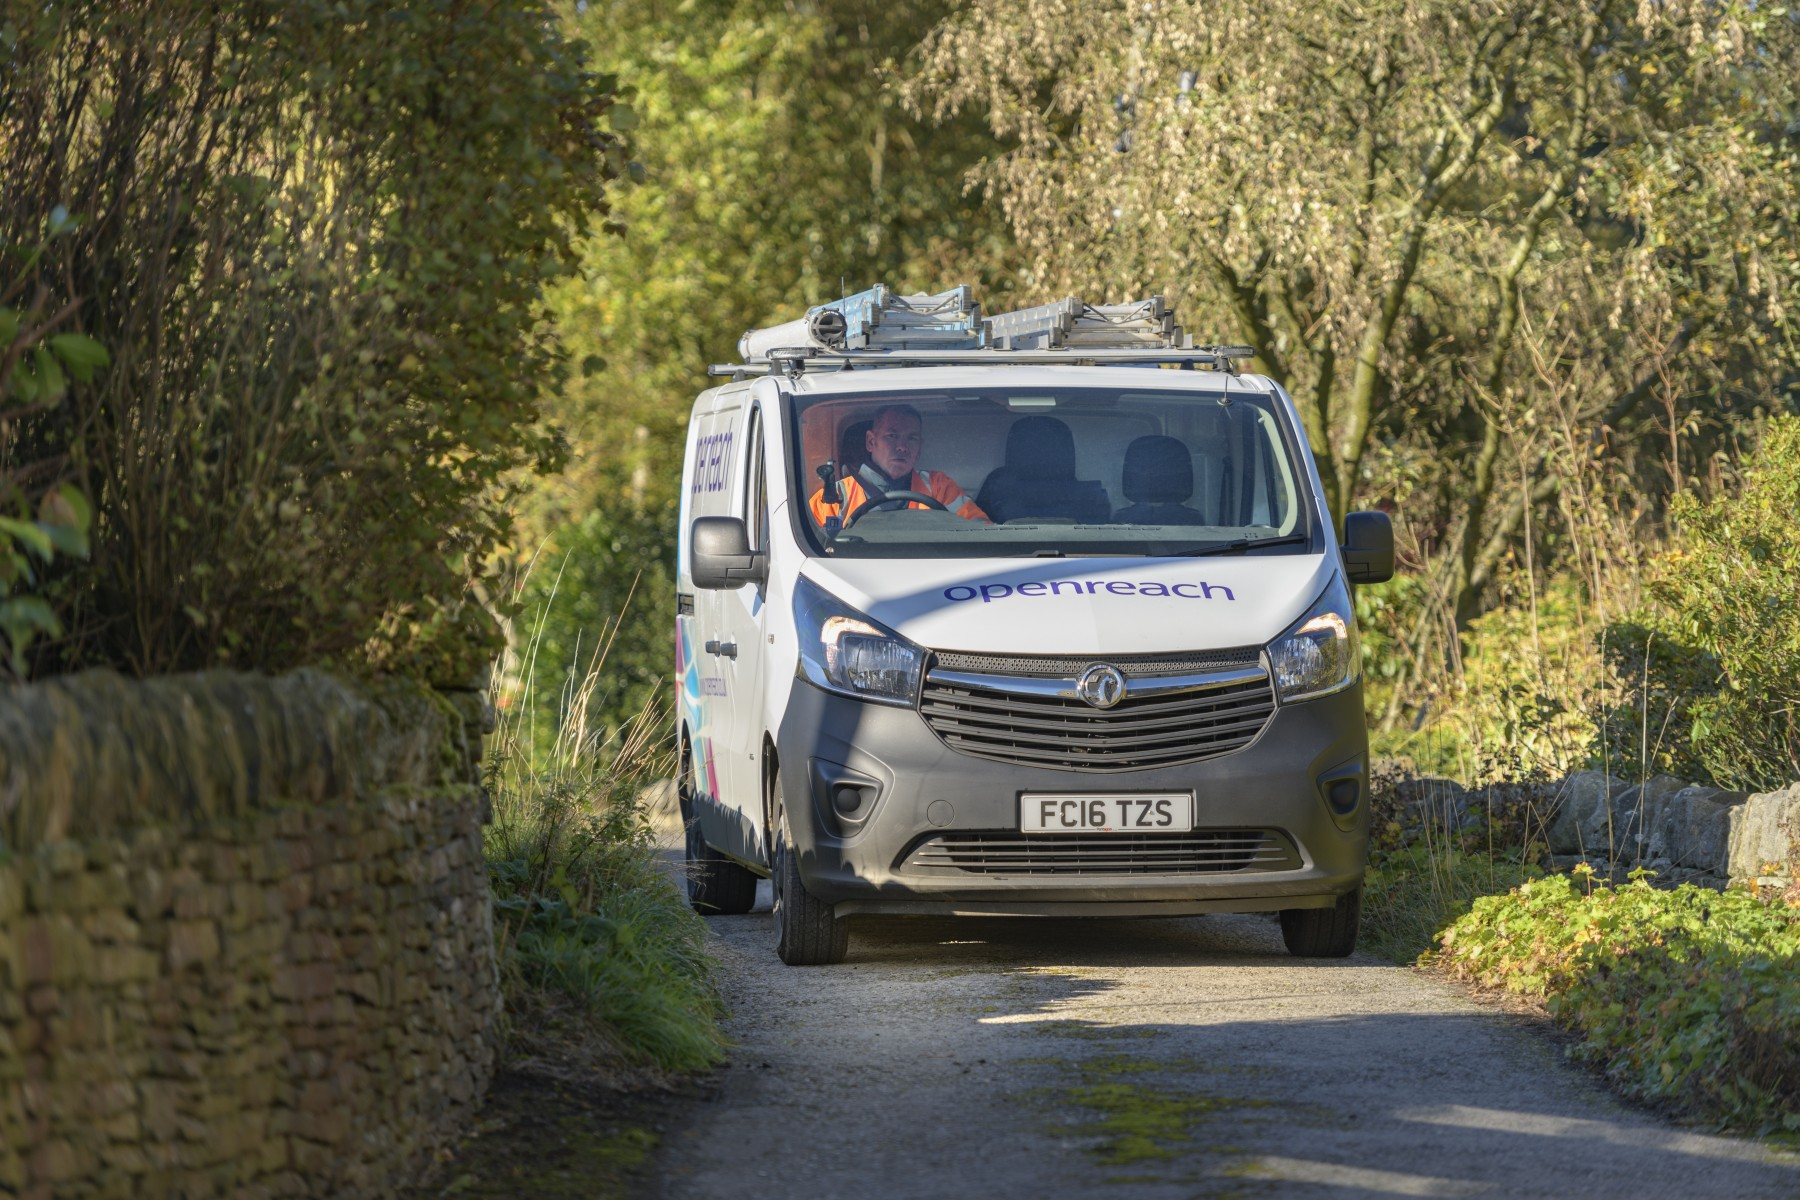 Openreach van3 - rural setting